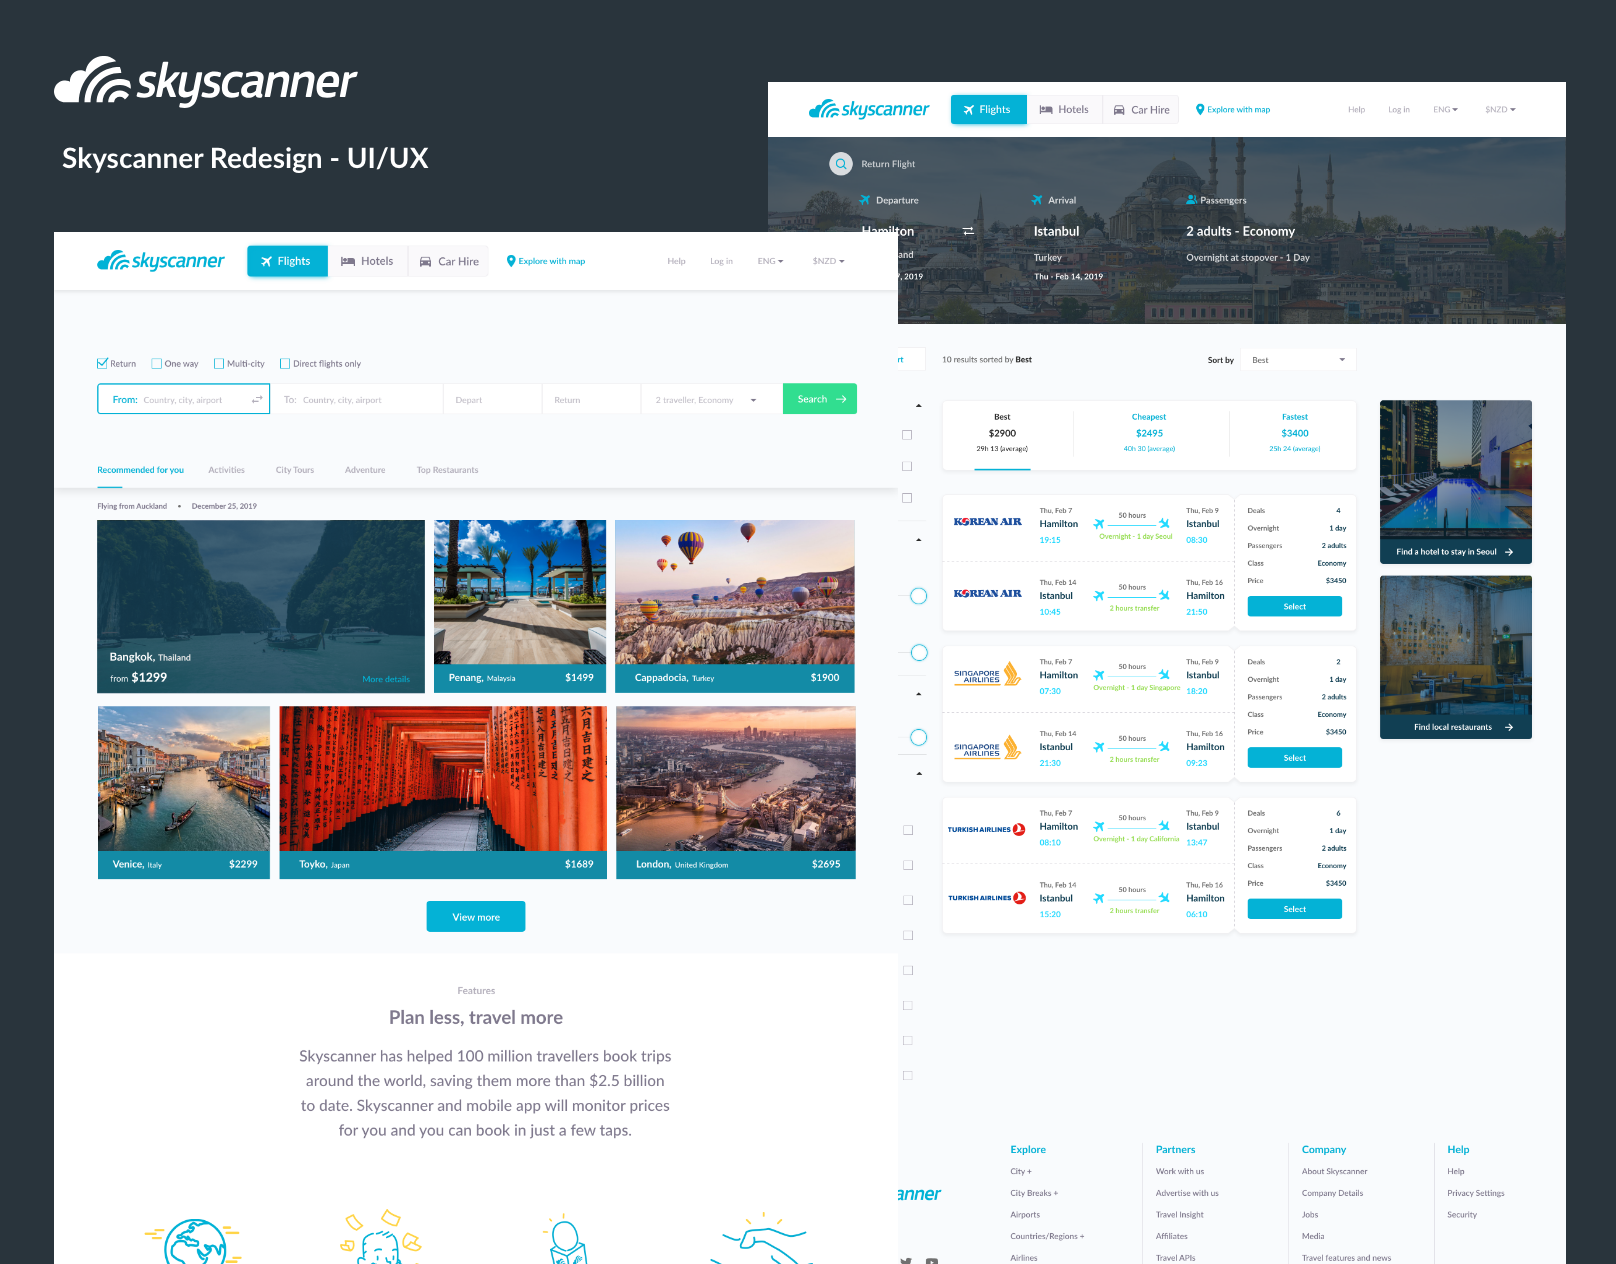 Case Study Ui Ux Skyscanner Redesign By Aaron Ooi Noteworthy The Journal Blog